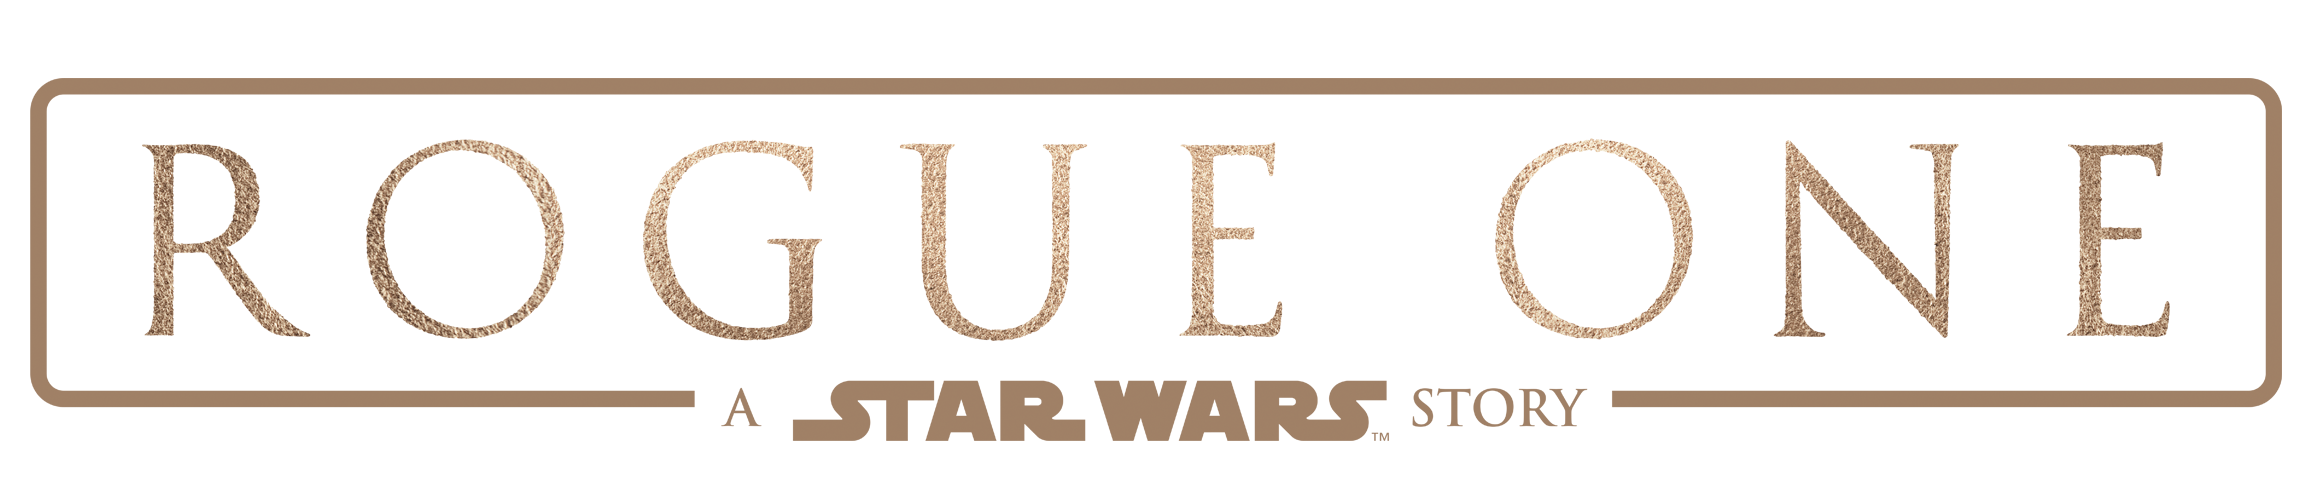 File:Rogue One Logo.png